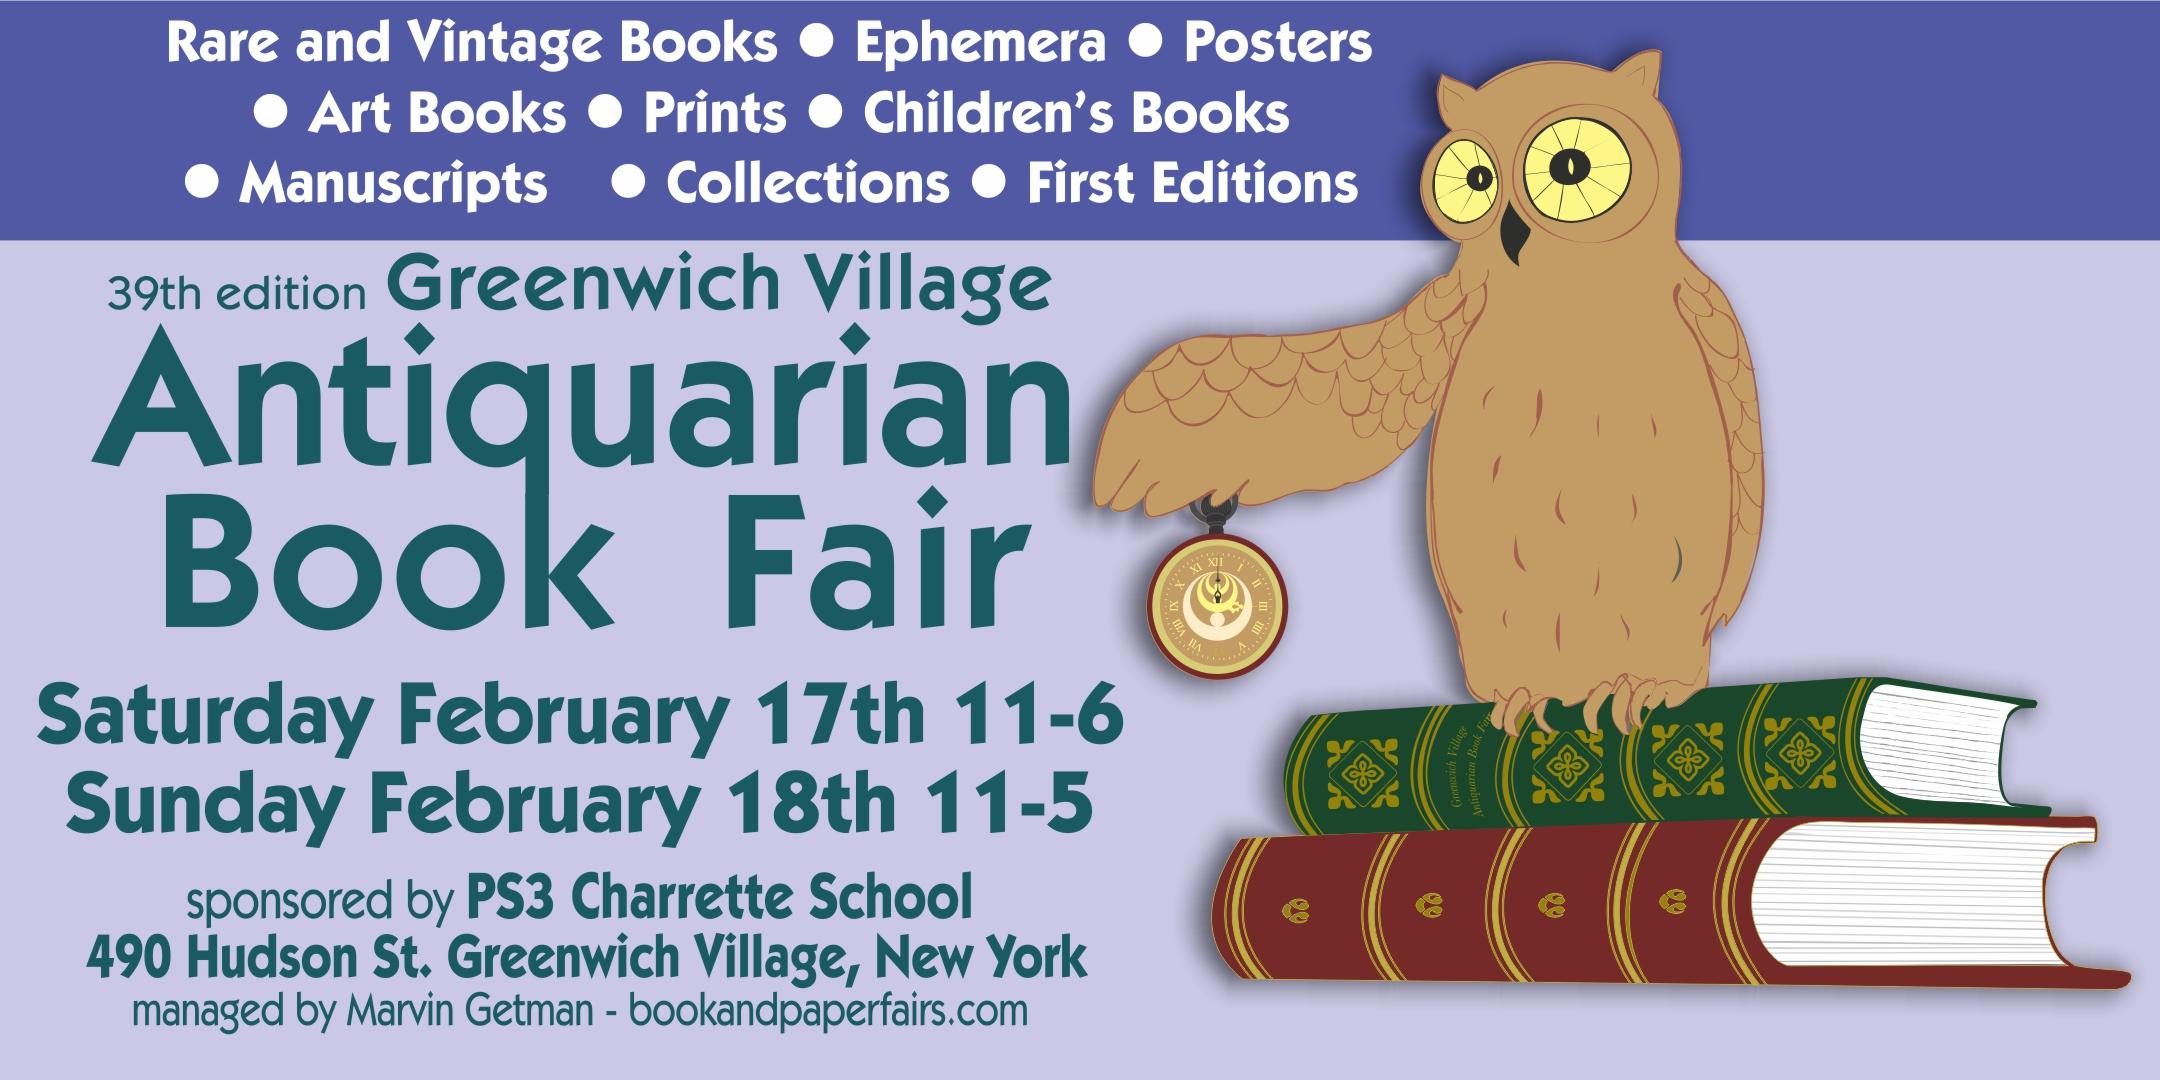 Greenwich Village Antiquarian Book Fair - $5